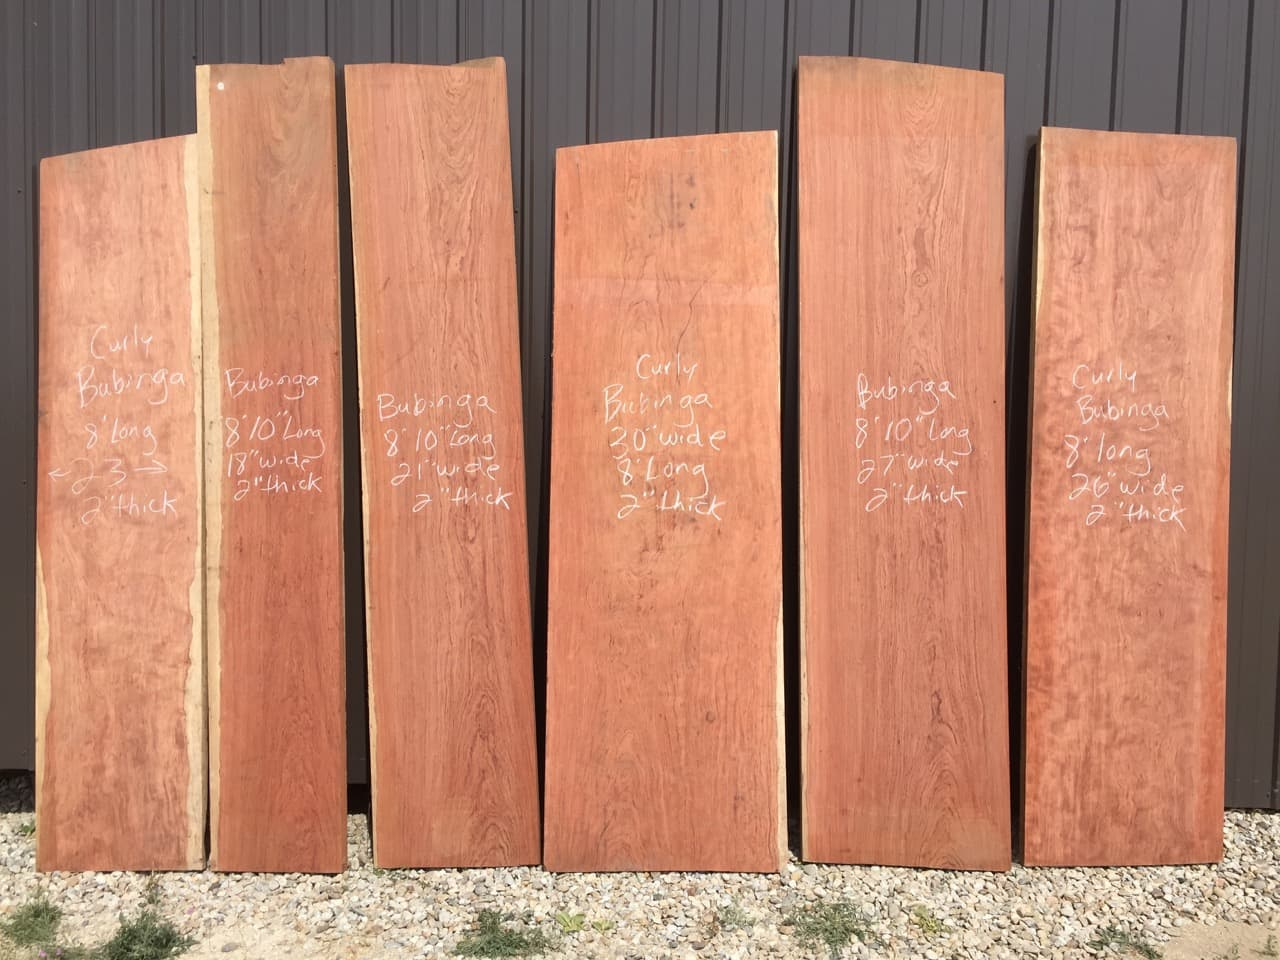 Bubinga live edge slabs for dining tables, conference tables